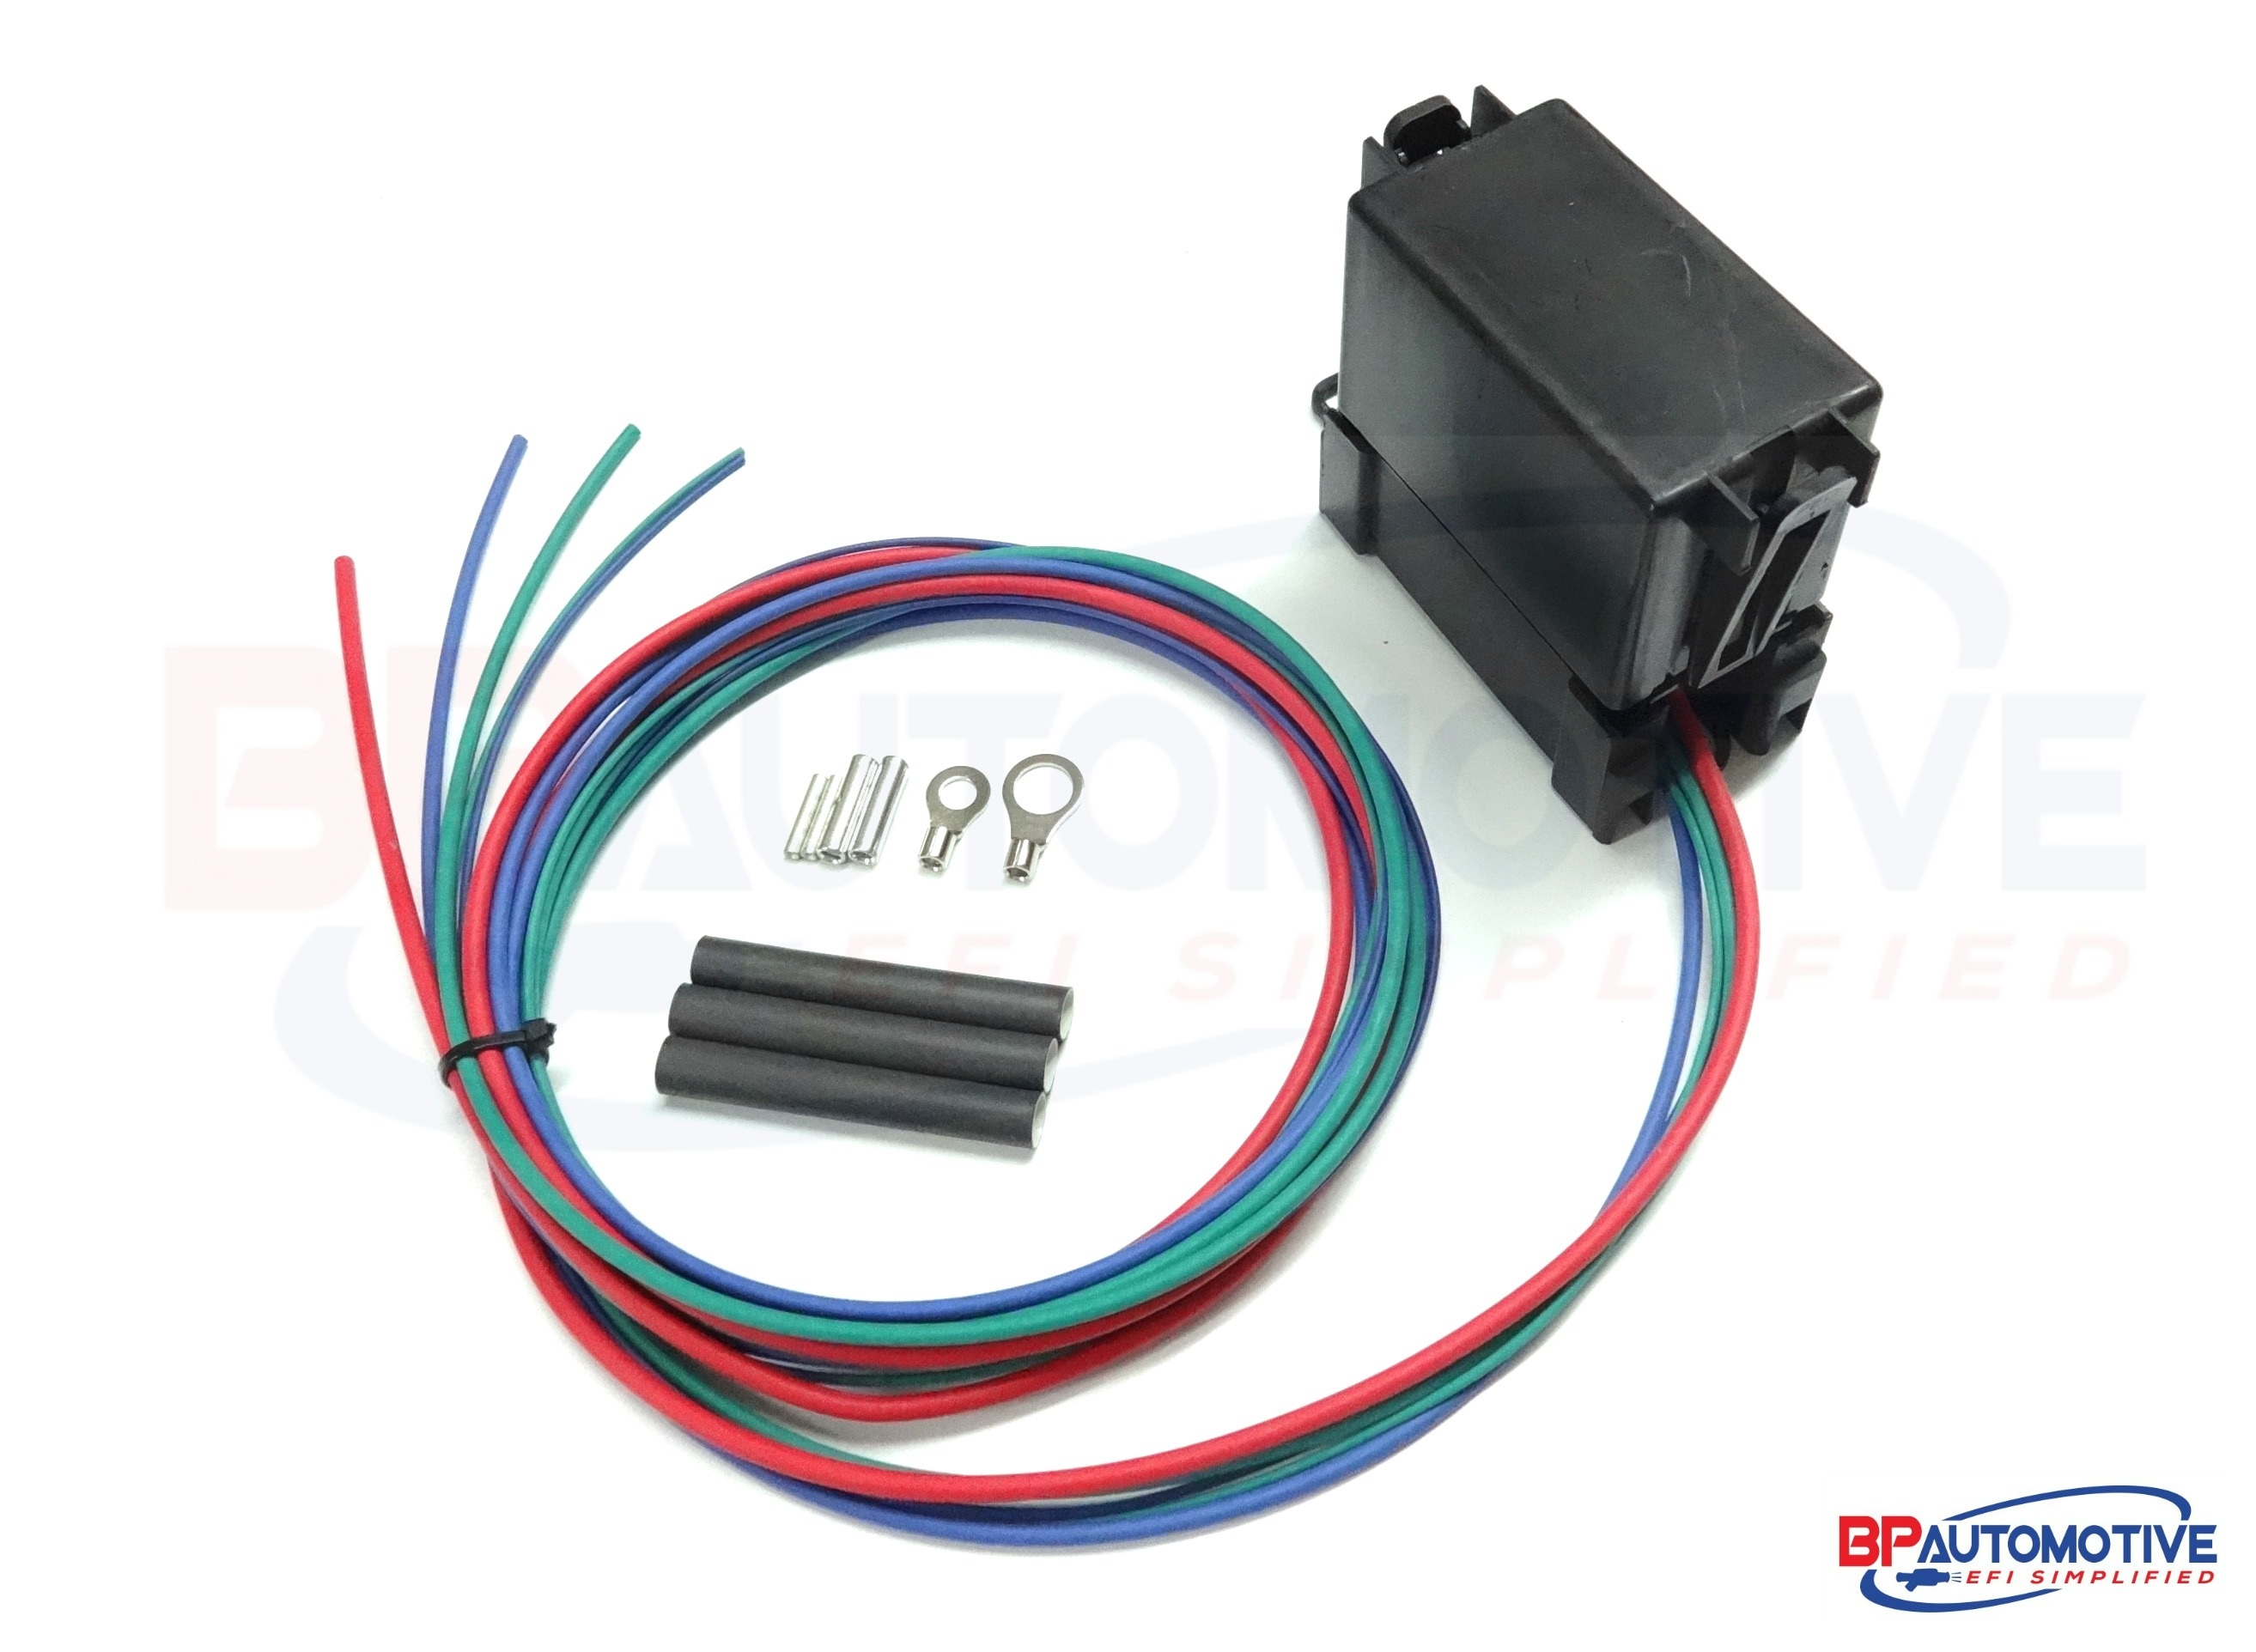 ls1 electric fan wiring harness image collections